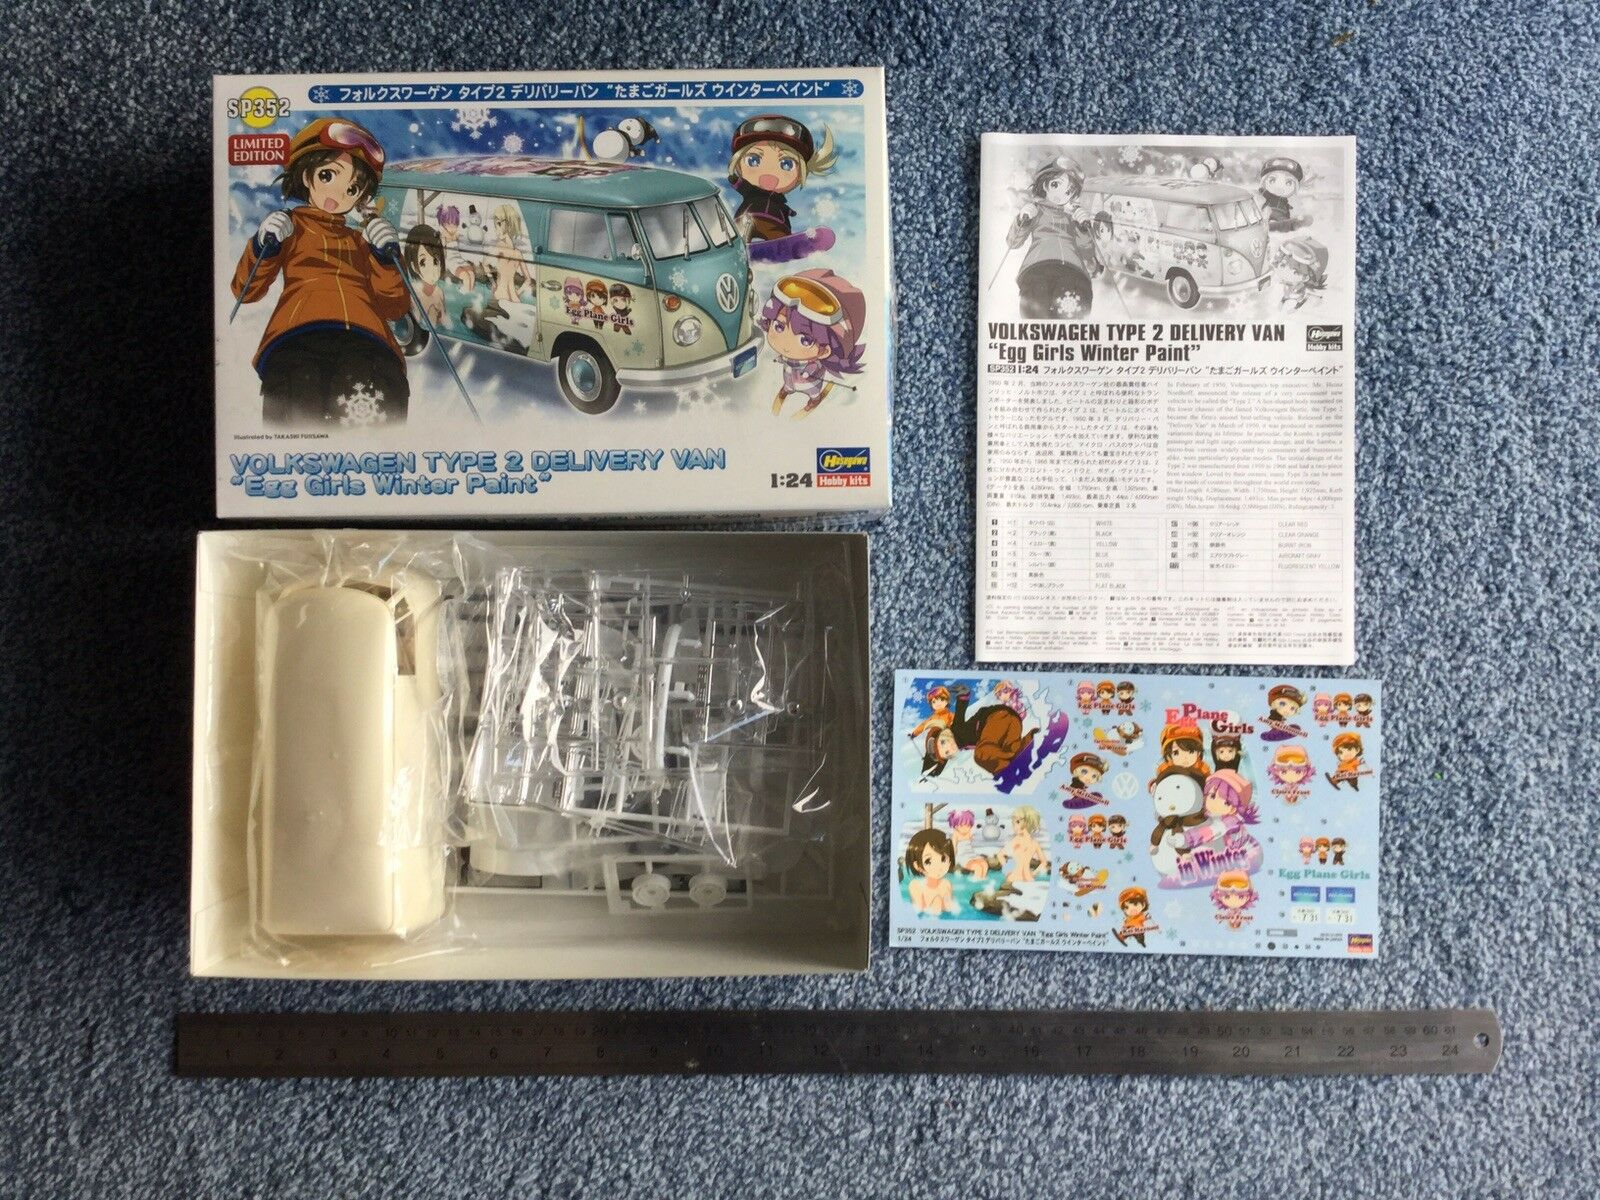 Hasegawa 1 24 Volkswagen Type 2 Delivery Van 'Egg Girls Winter Paint' kit